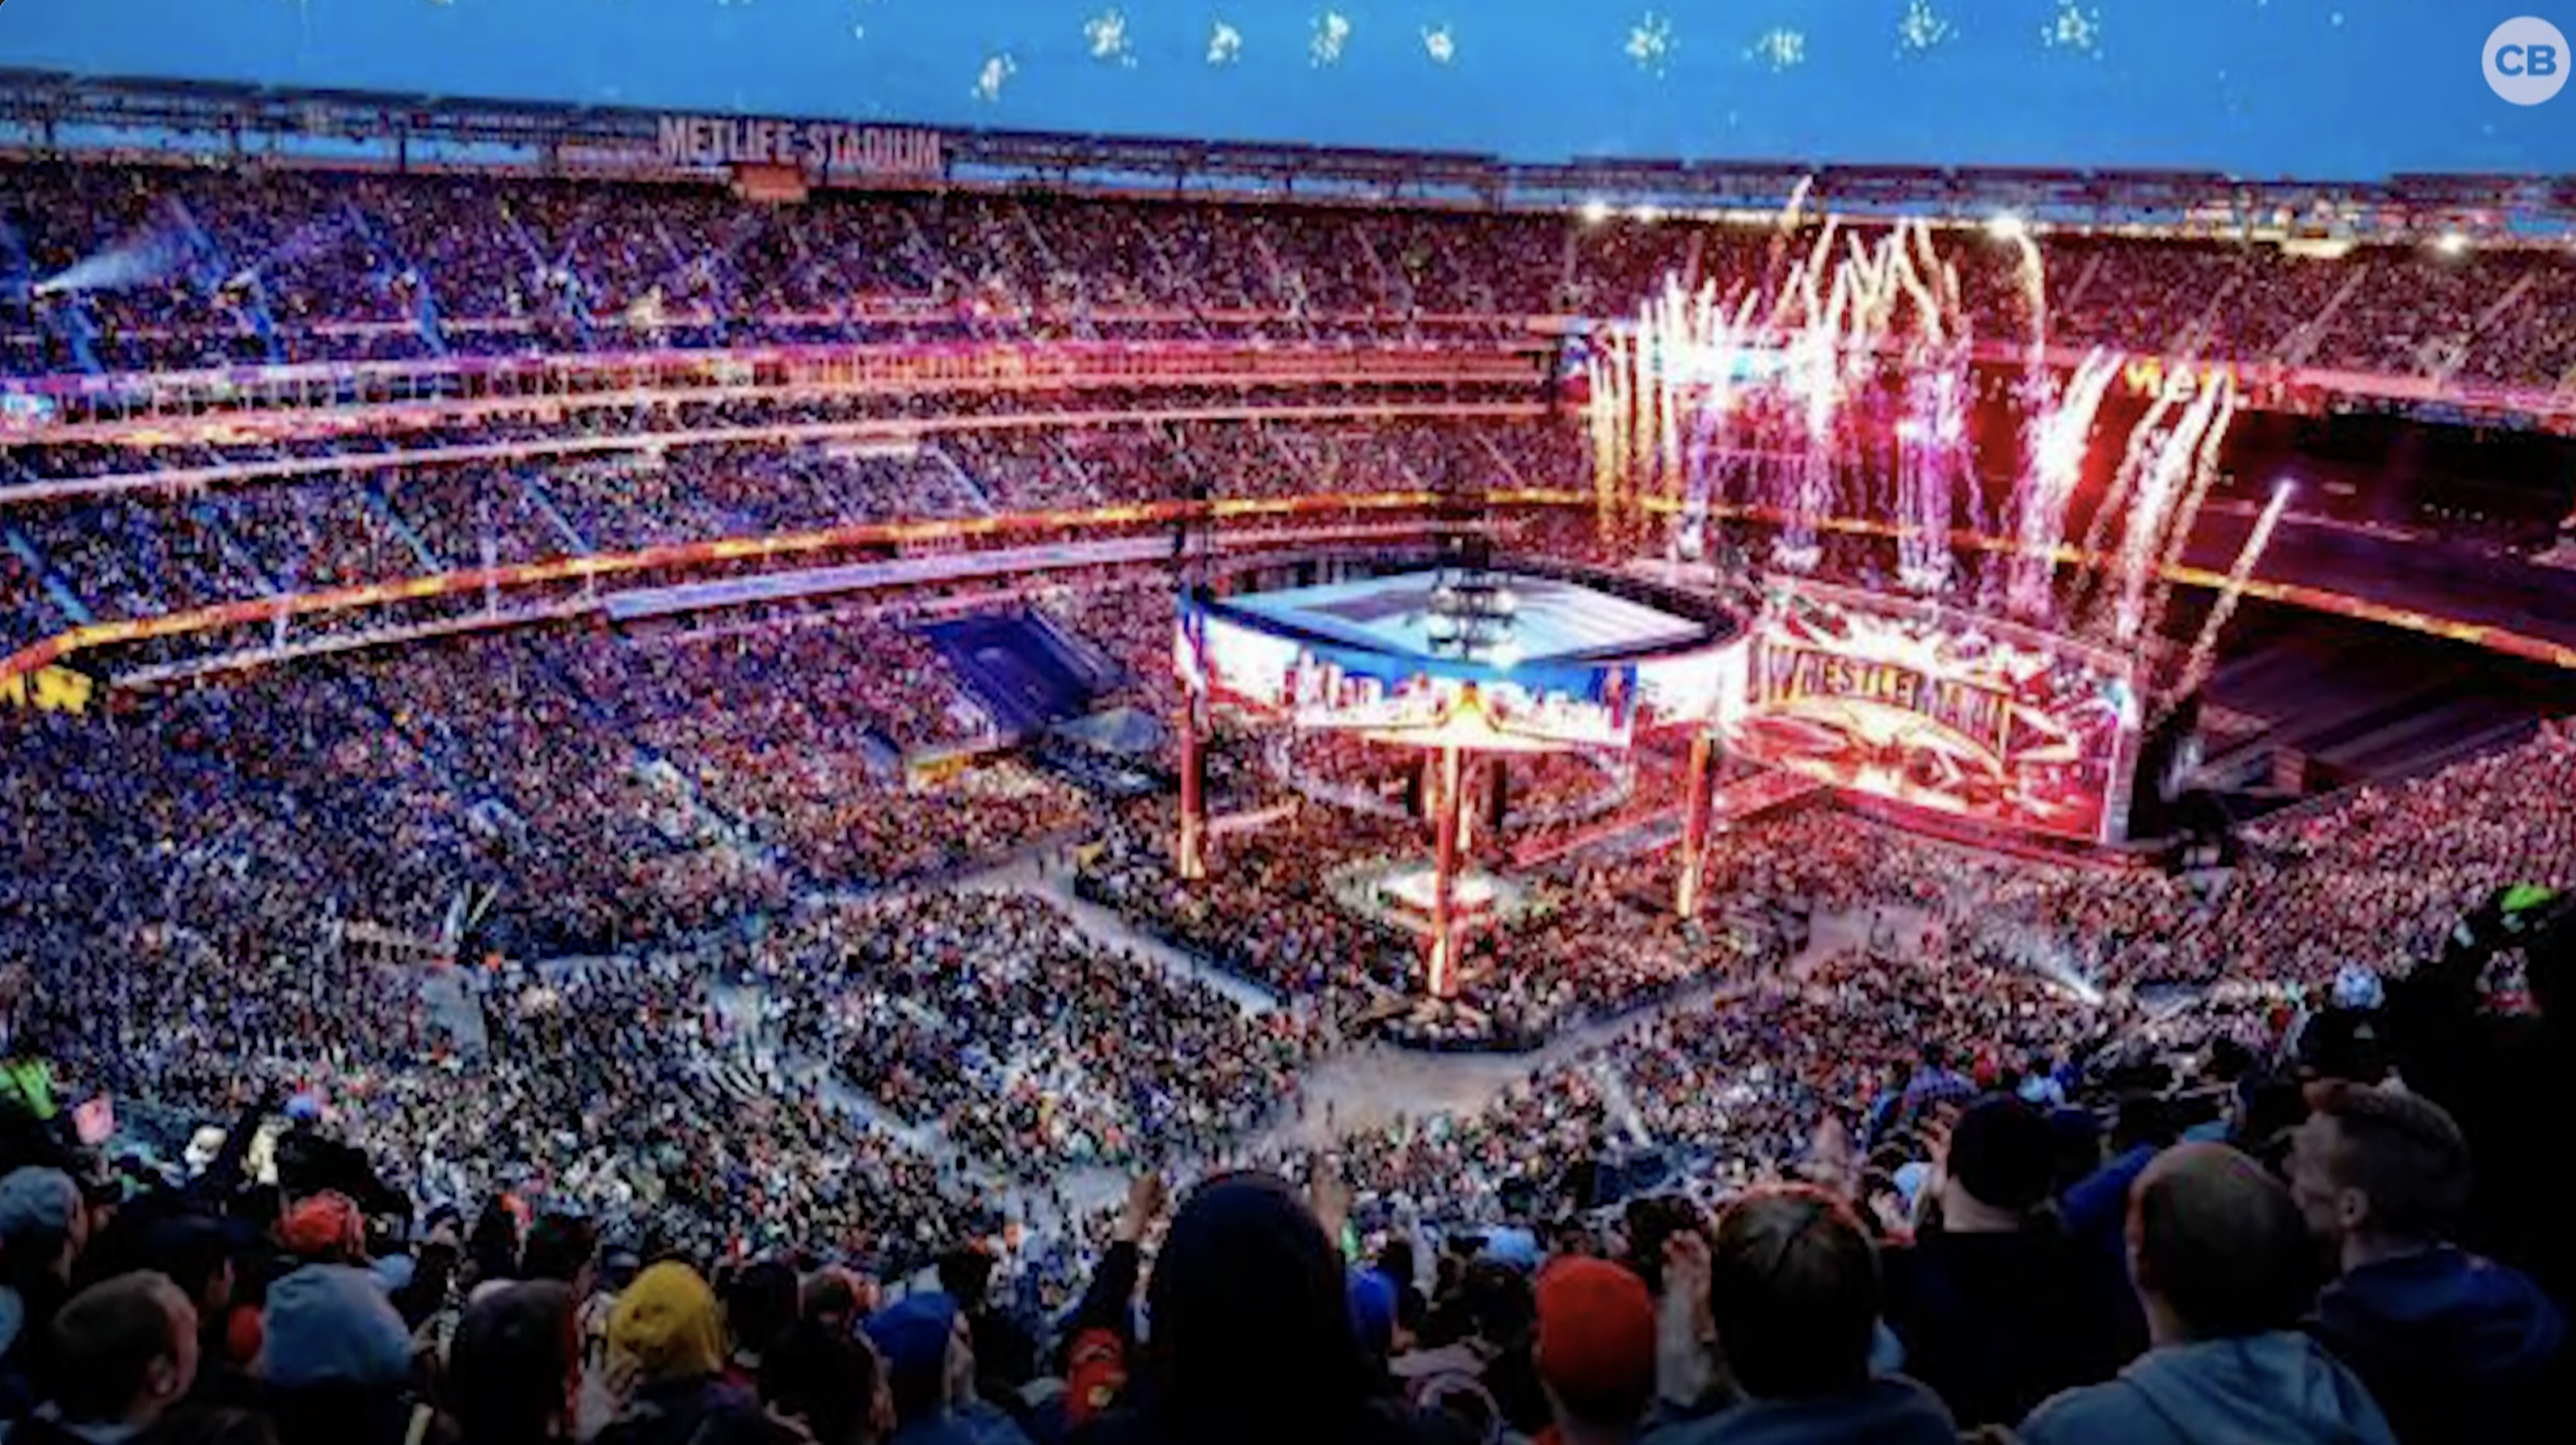 5 Things We Want to See in WWE/AEW in 2021